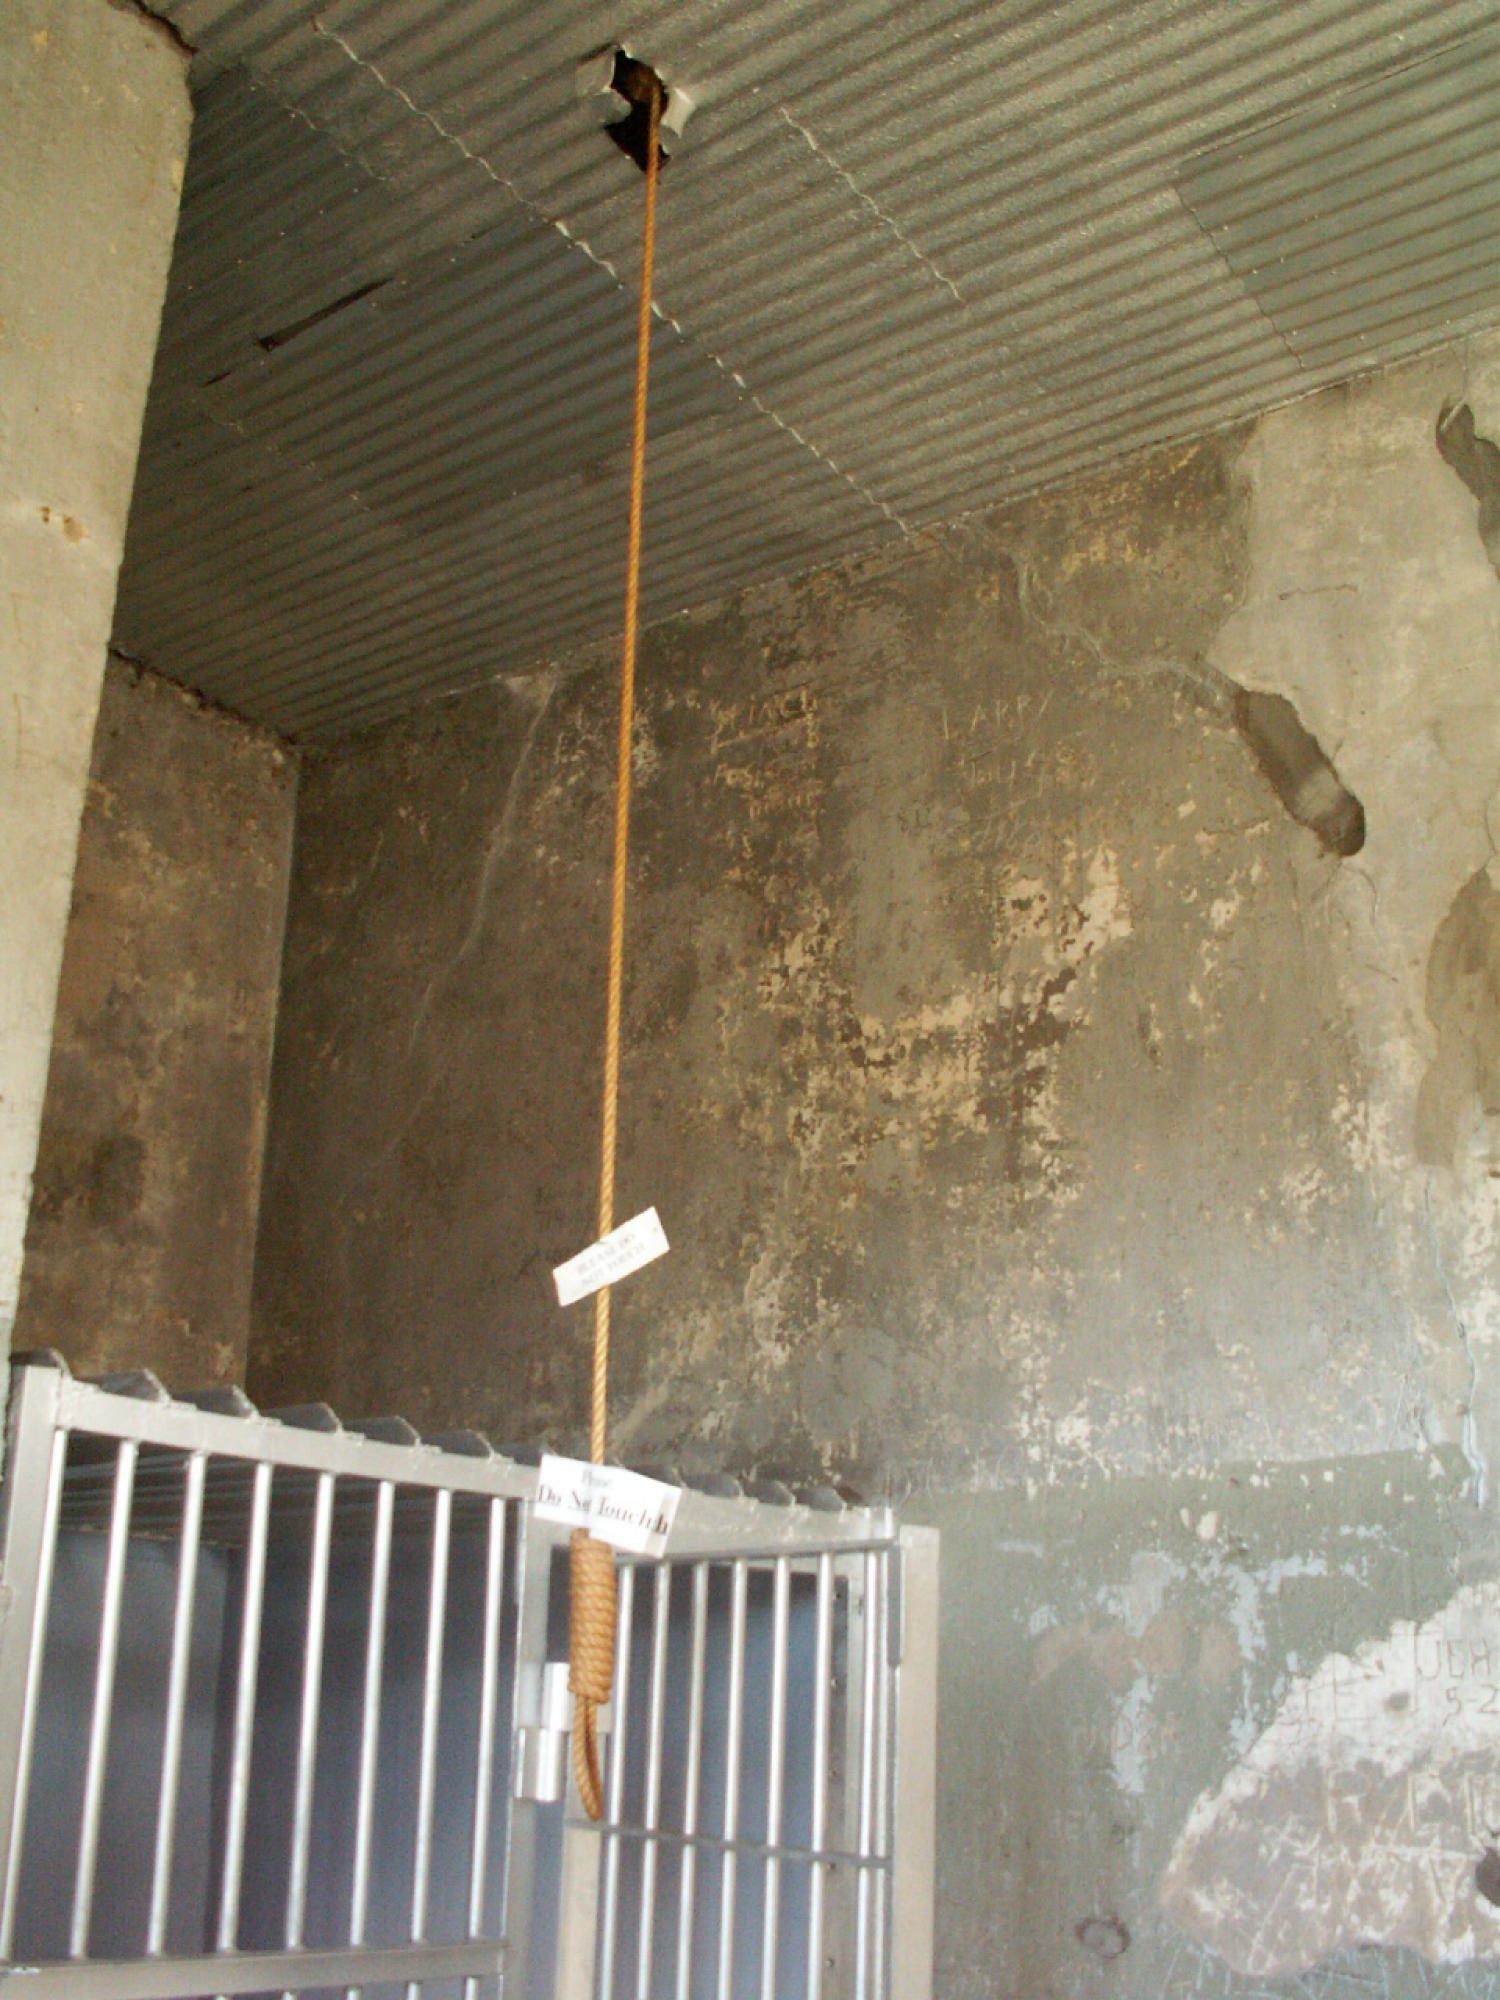 Noose Hanging From Ceiling The